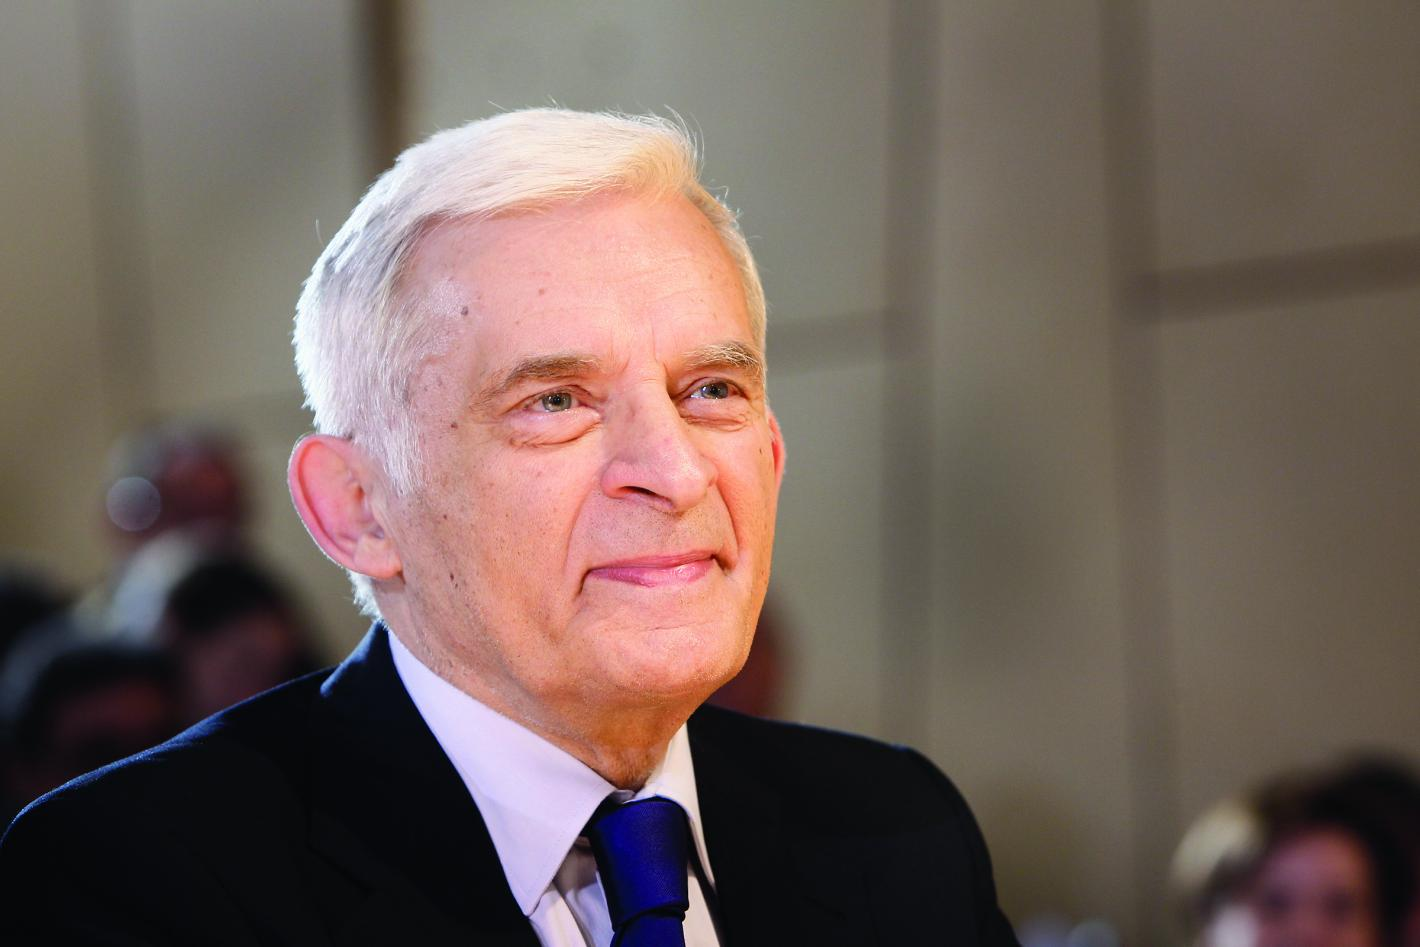 Jerzy Buzek, President of the European Parliament (2011)